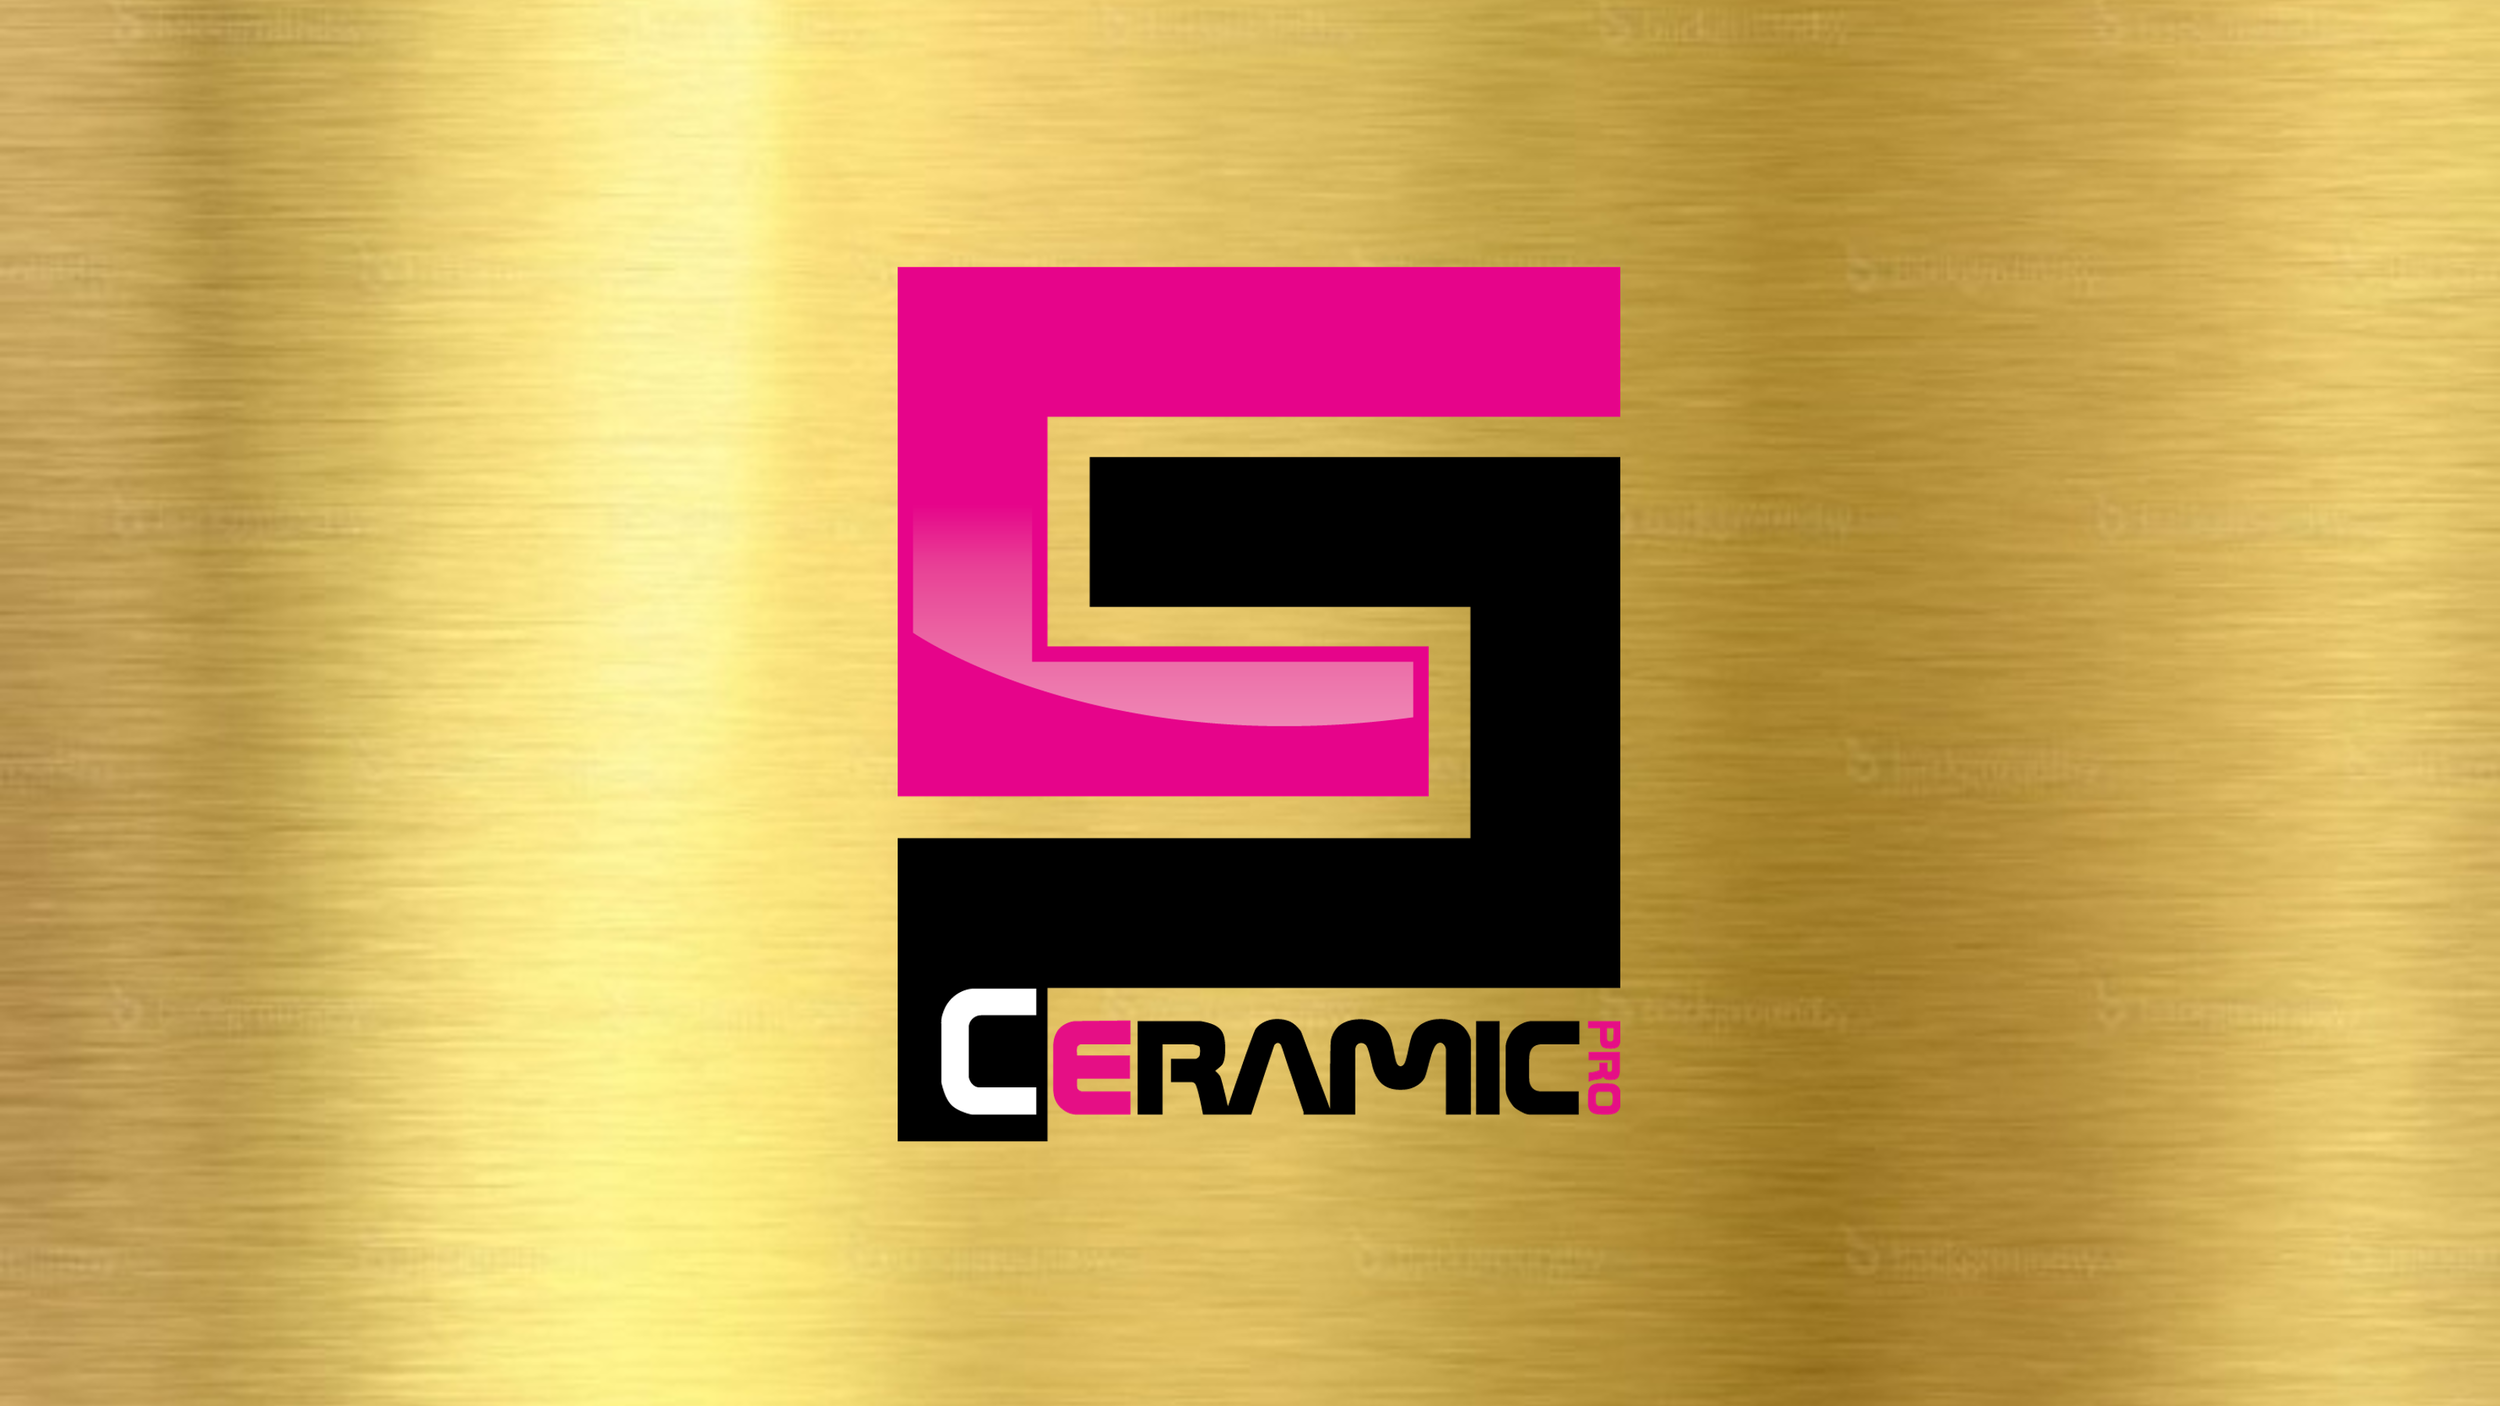 CERAMIC PRO GOLD PACKAGE (STARTING AT $2199) - 2 Stage Polish Included4 layer Ceramic Pro 9H Paint1 layer Ceramic Pro LIGHT Paint1 layer Ceramic Pro 9H all glass1 layer Ceramic Pro 9H wheels off1 layer Ceramic Pro LIGHT wheels off1 layer Ceramic Pro 9H all plasticsLIFETIME WARRANTY